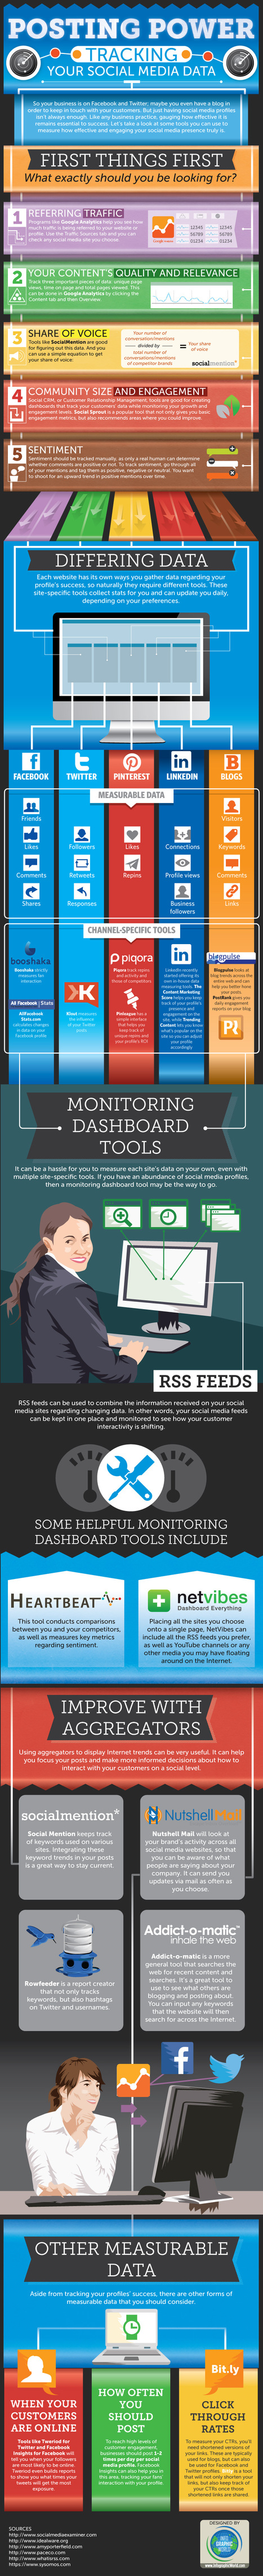 How To Track Your Social Media Data And Measure ROI [INFOGRAPHIC]